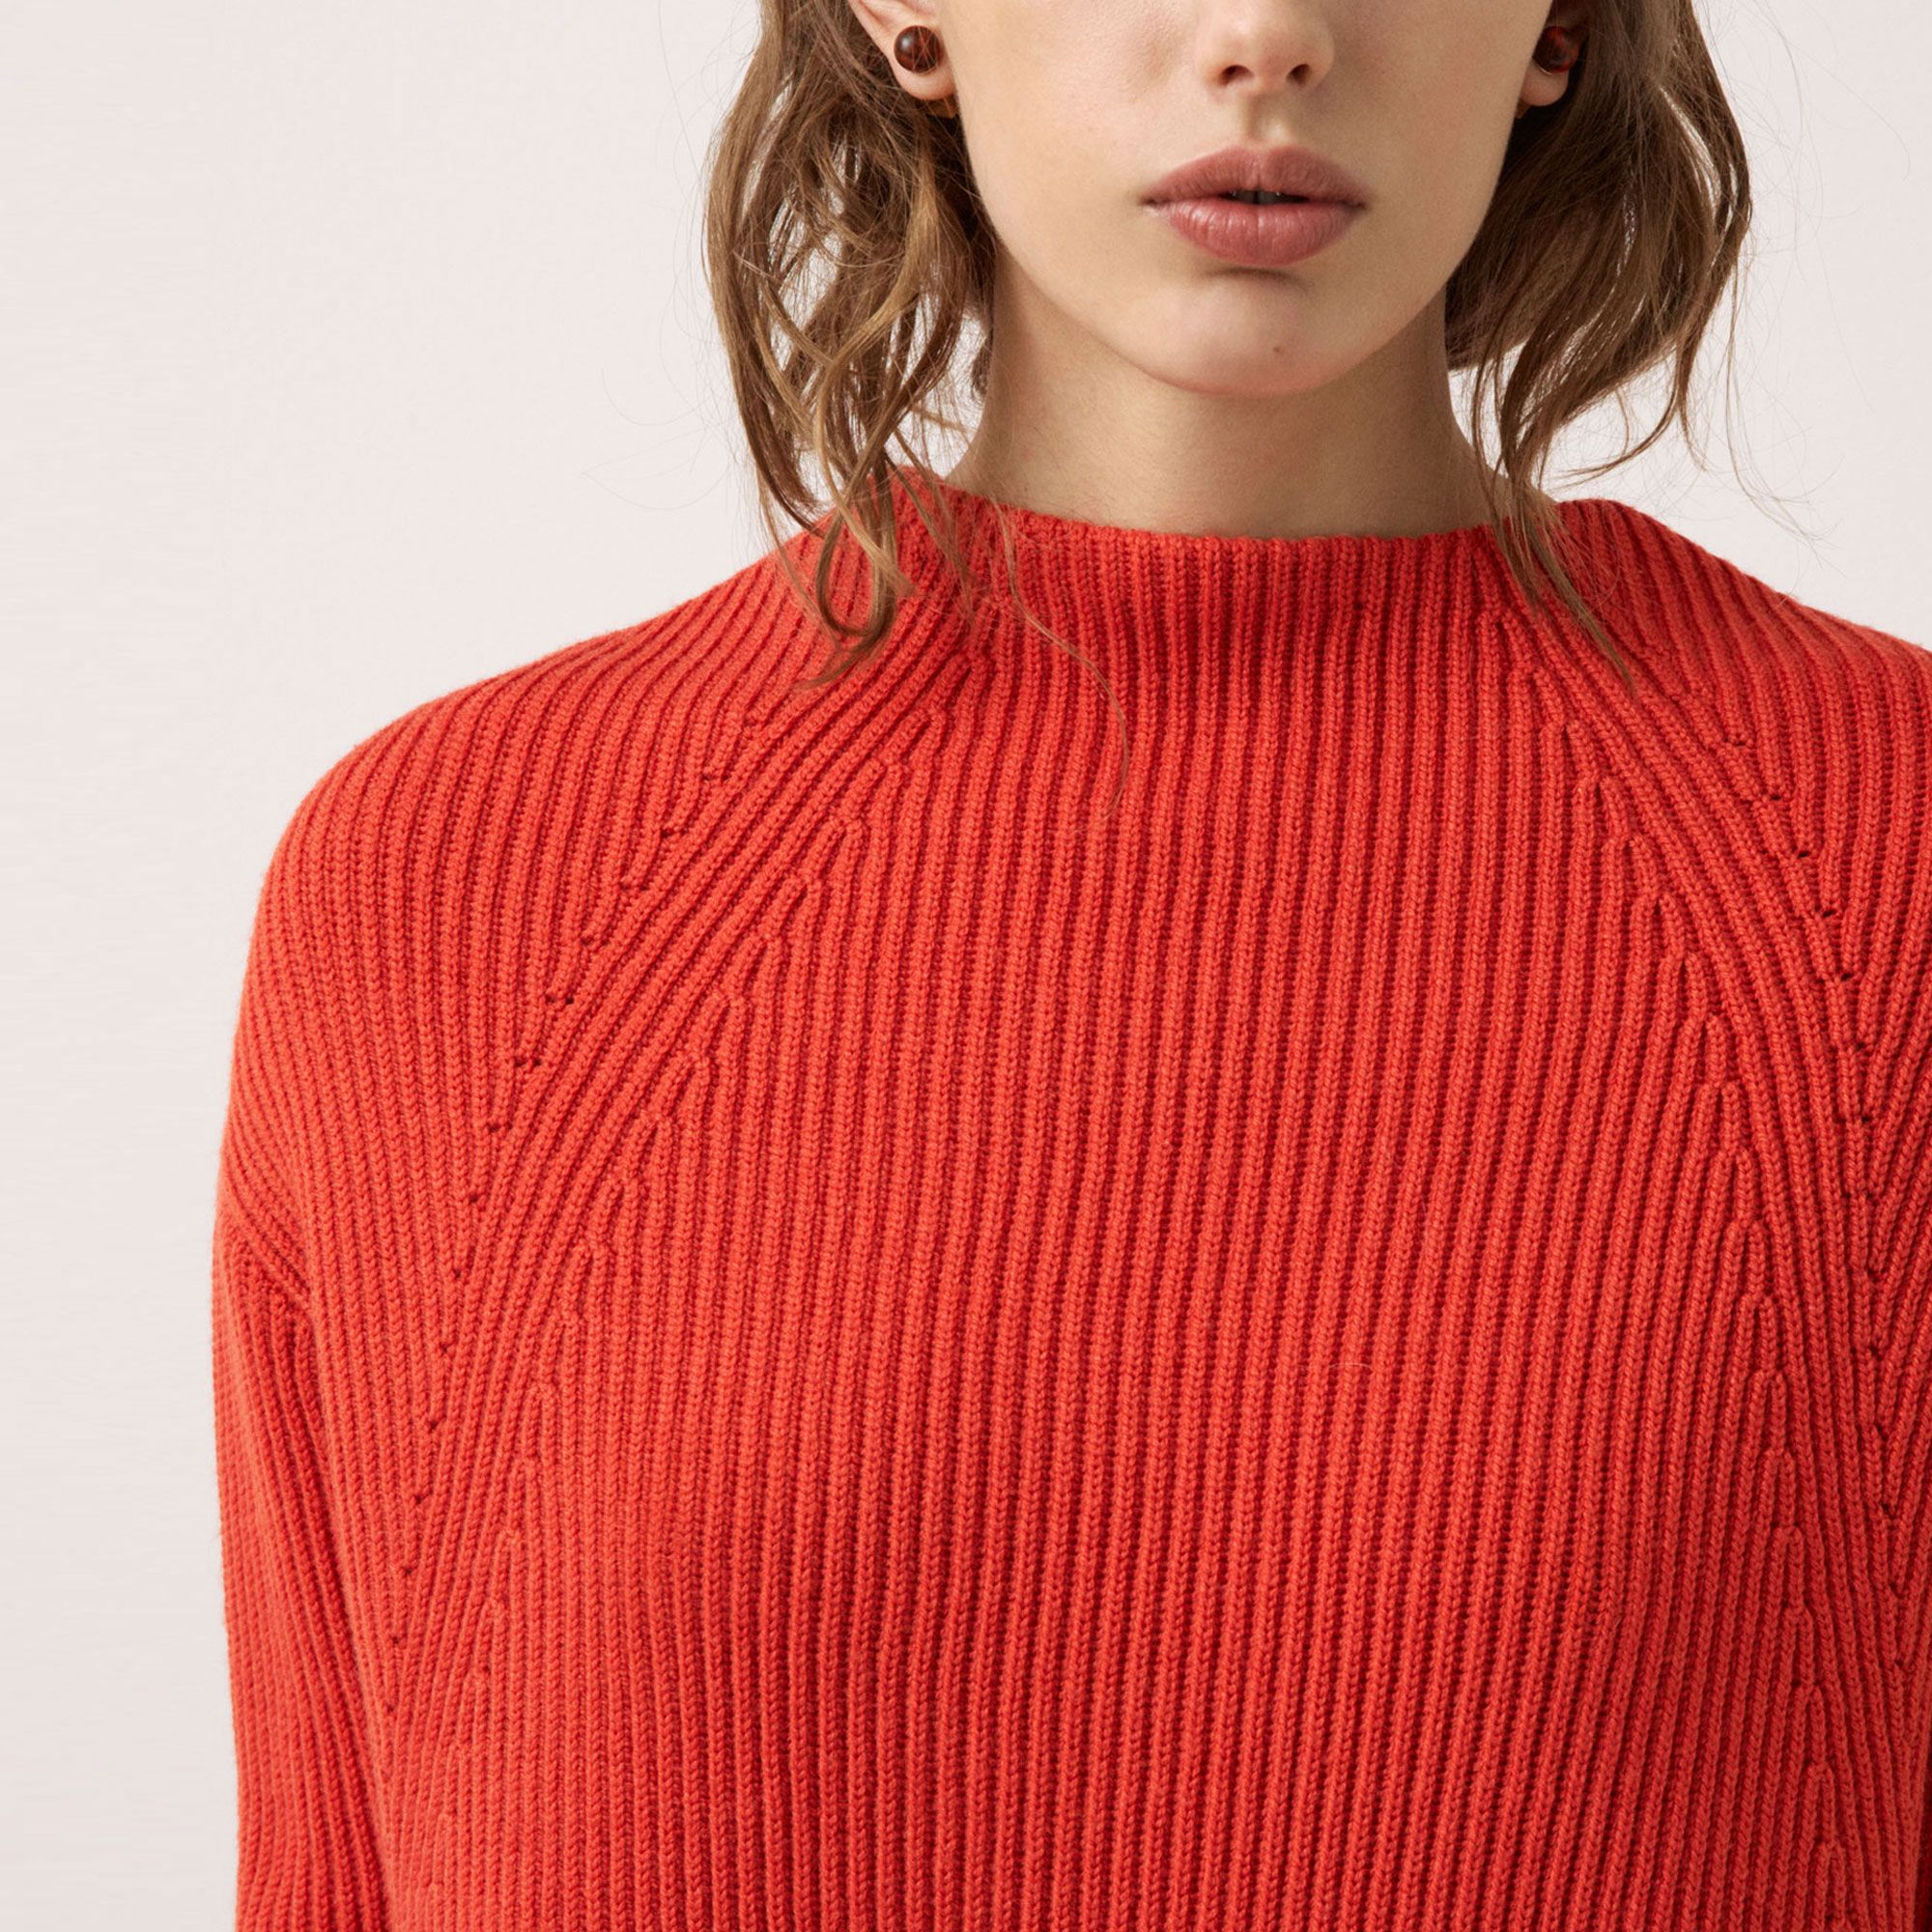 FWSS Getting Nowhere is a chunky sweater knitted from a ...